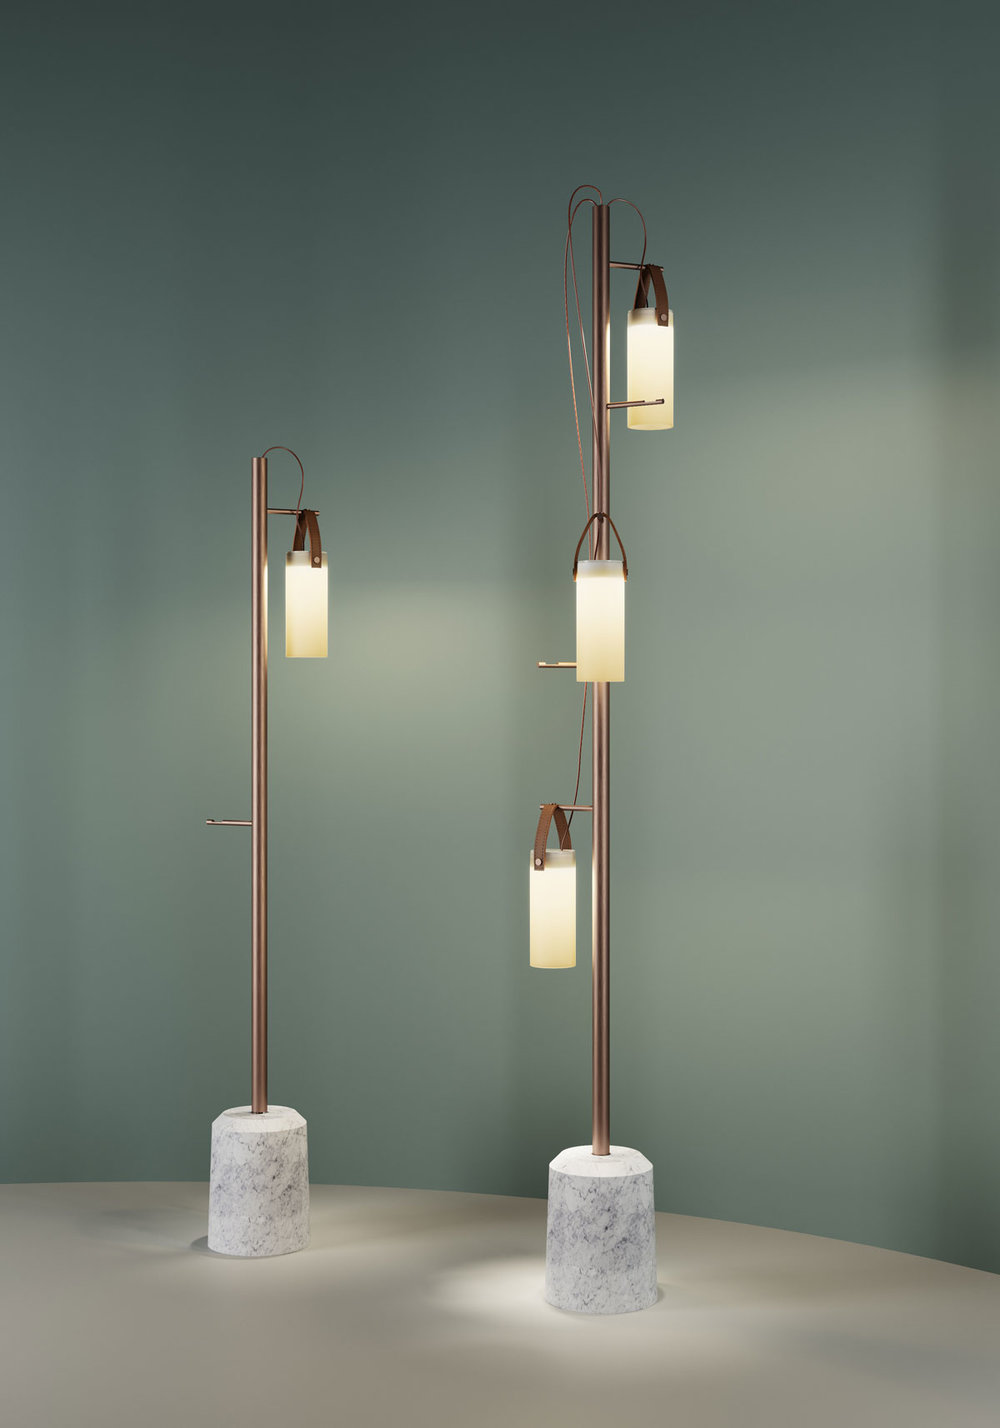 Galerie lamp collection is inspired aesthetically and functionally by the antique oil lamps of the Belle !epoque.